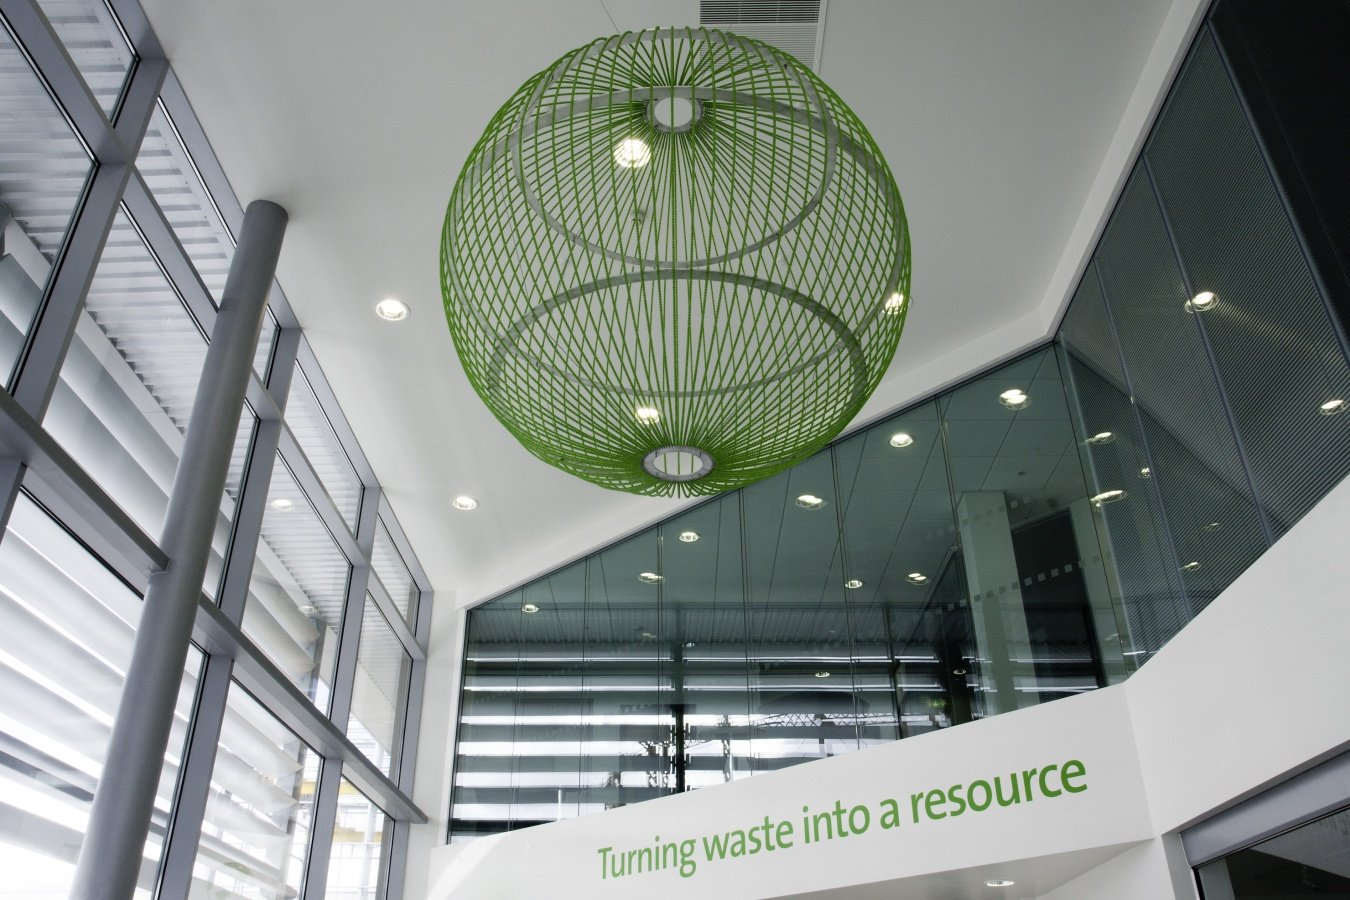 George Singer Modern Chandeliers And Lighting Installations Green Globe Photo 4 Www Georgesinger Co Uk